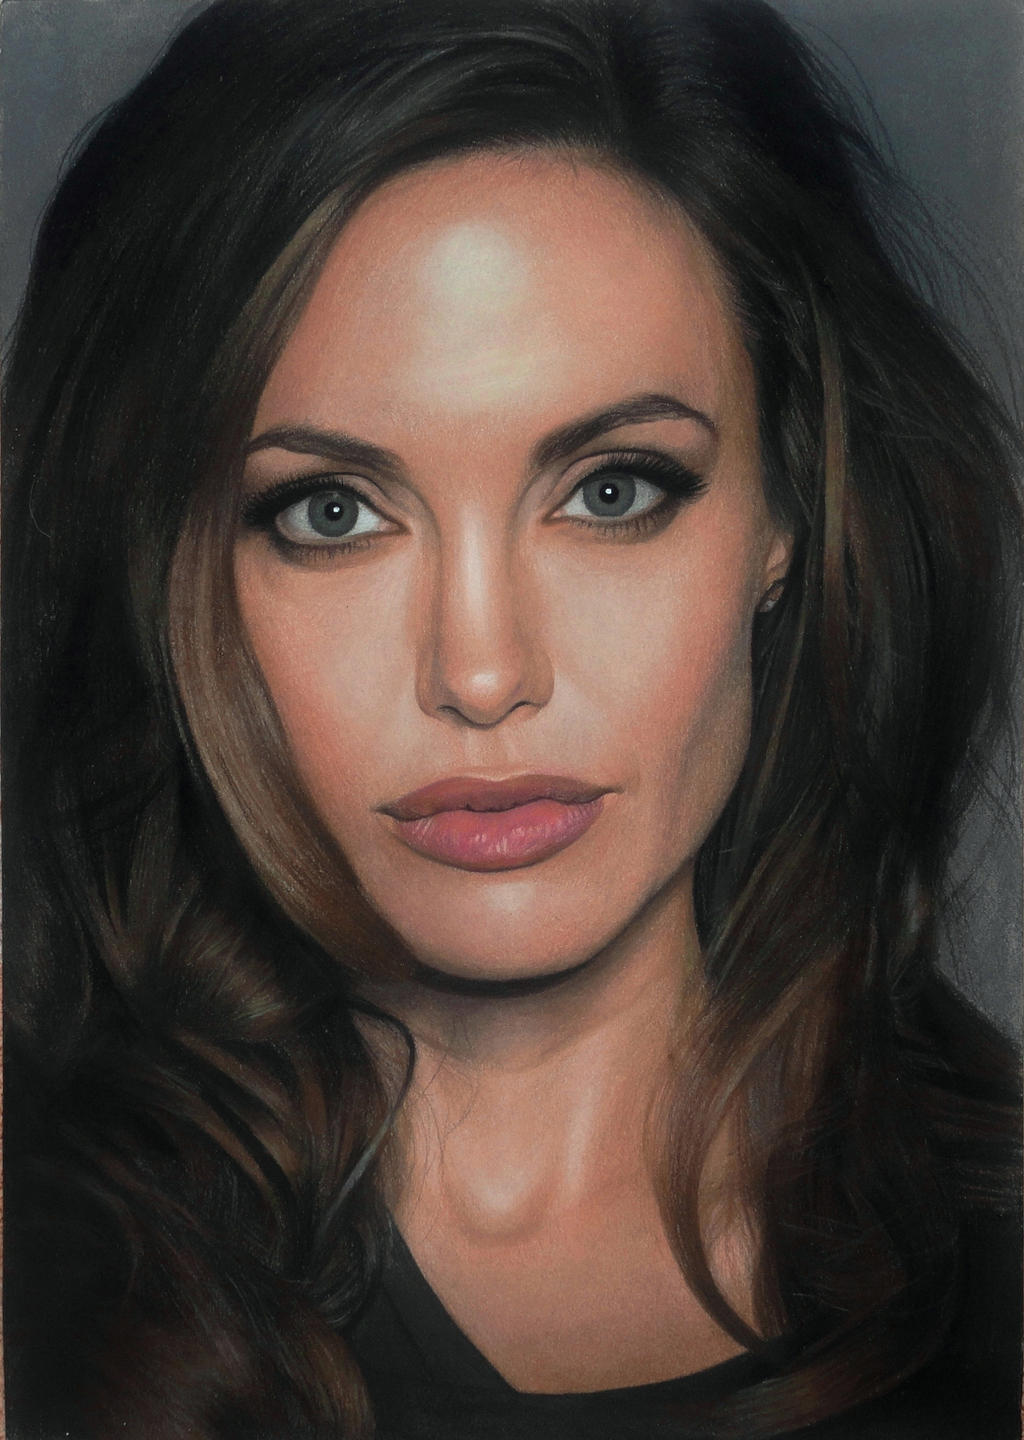 Angelina Jolie By Lizapoly Angelina Jolie By Lizapoly